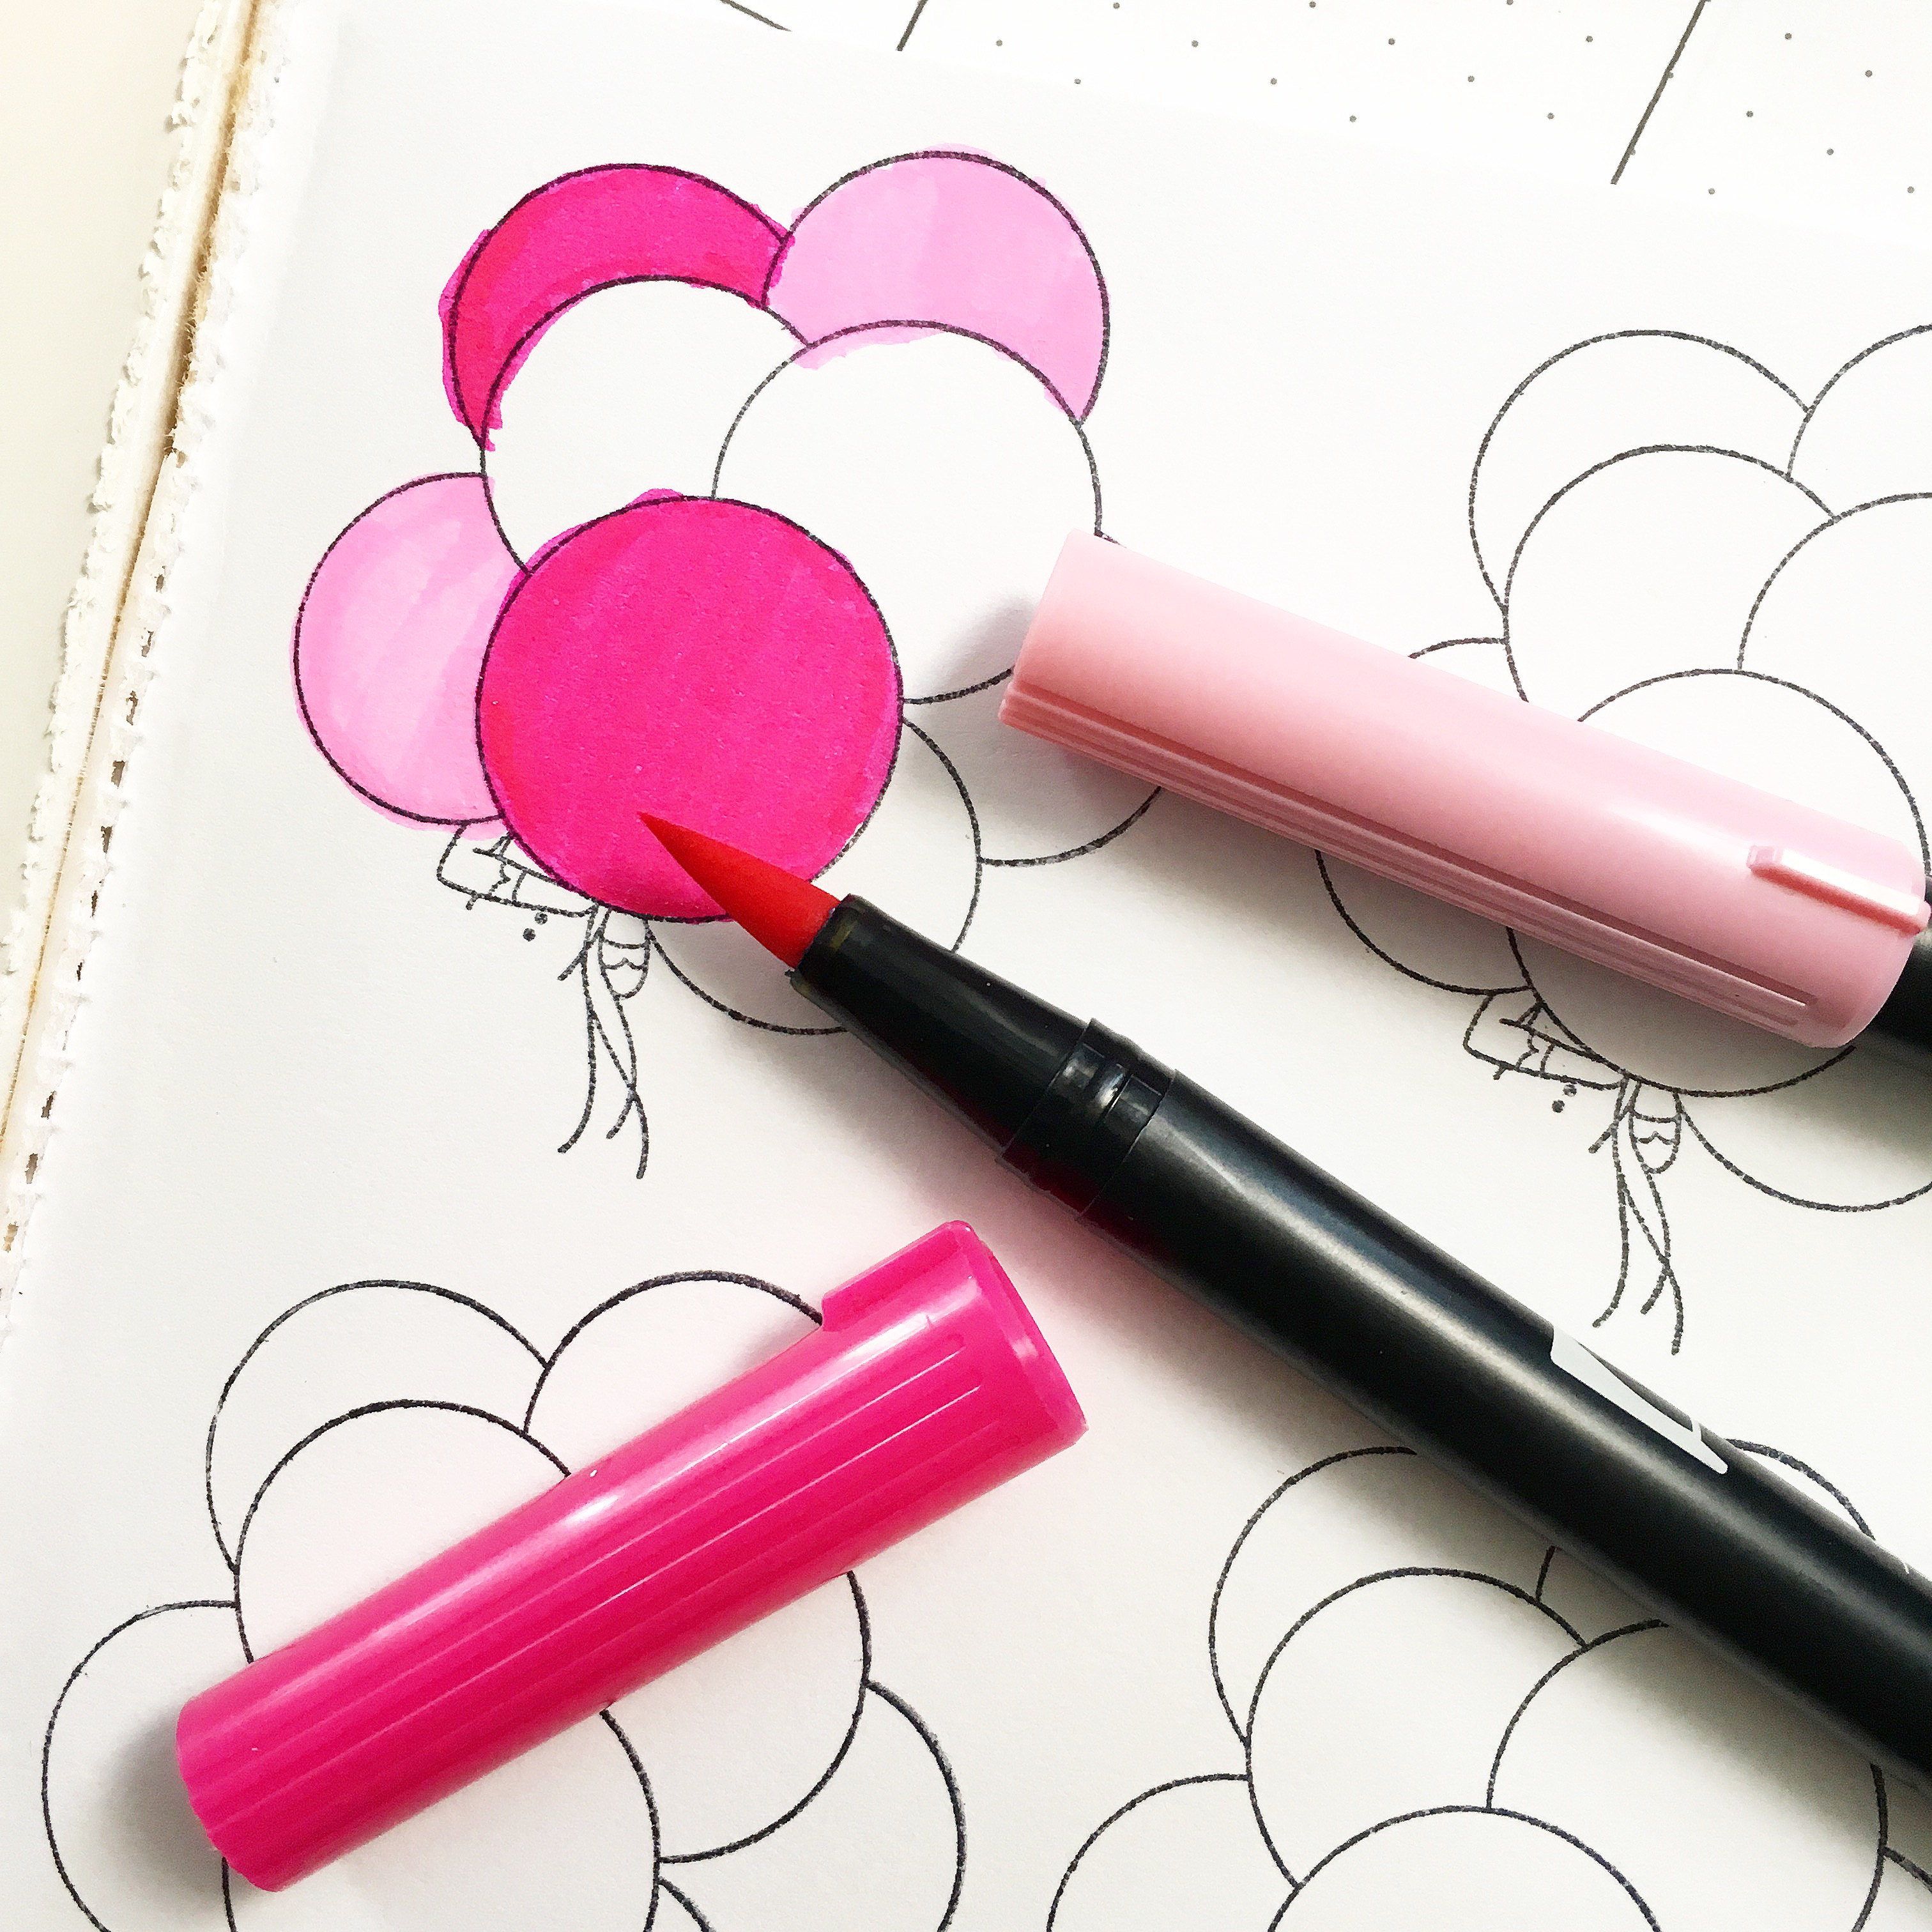 colouring stamped balloons in dark and light pink using brush markers